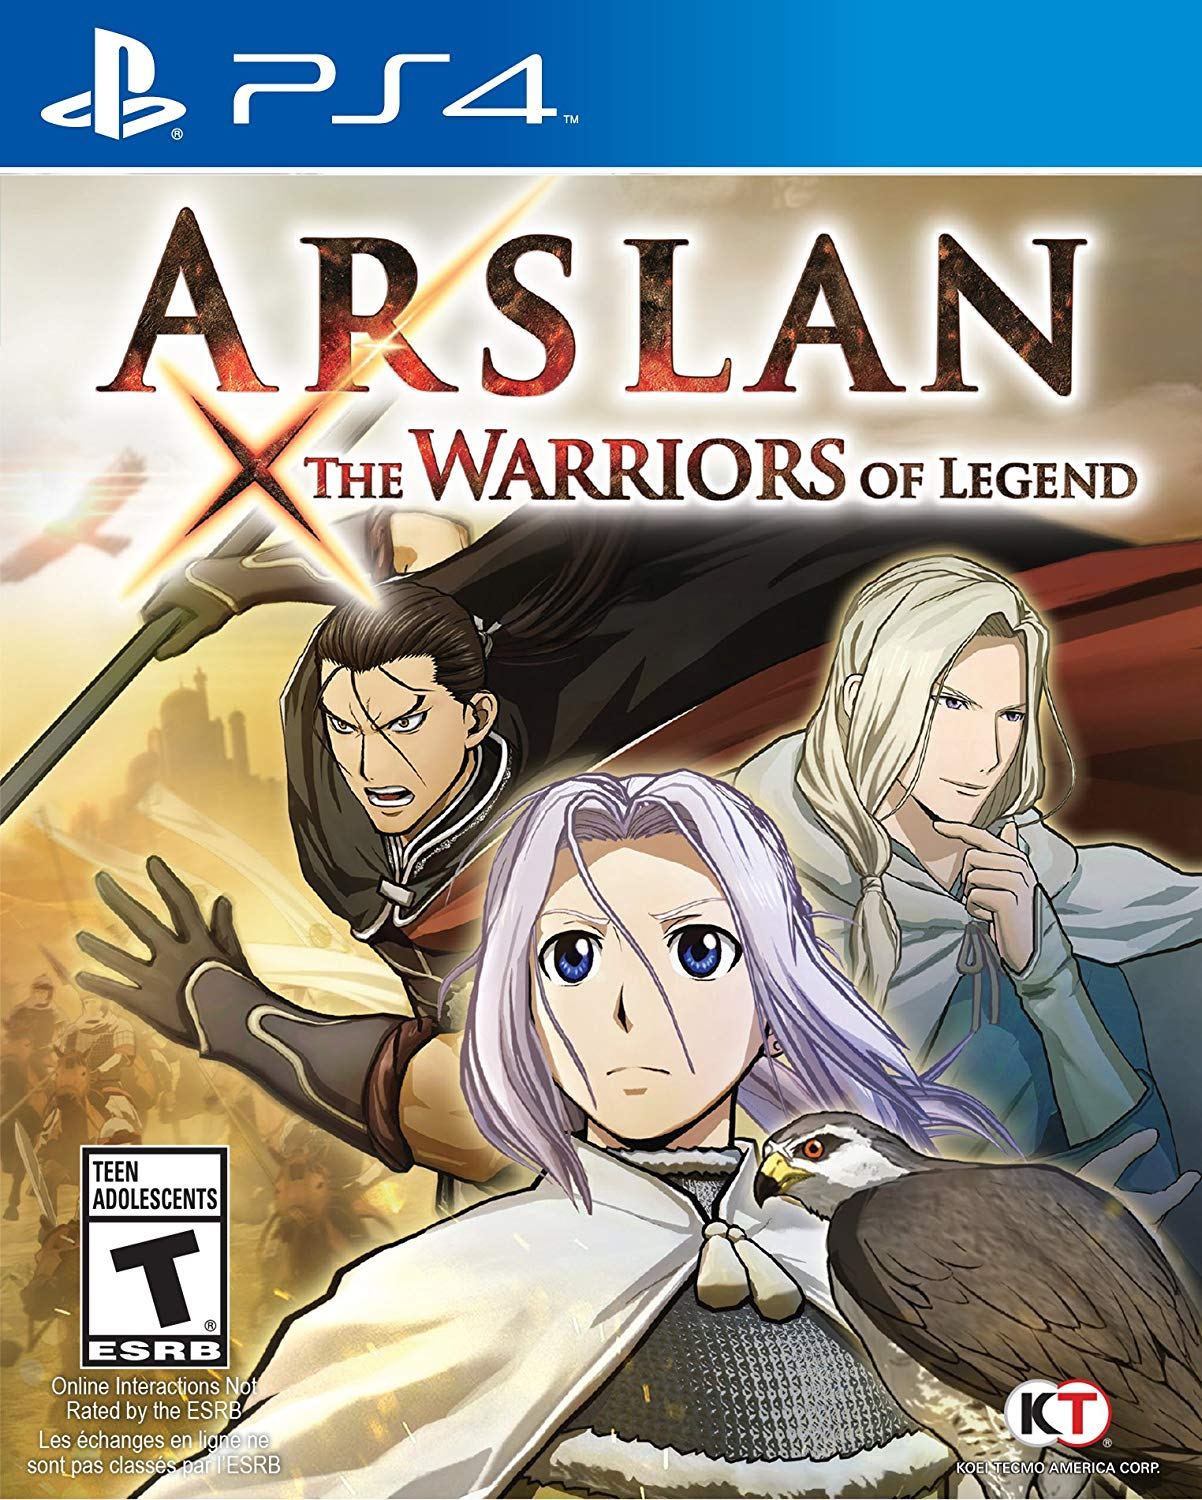 Arslan The Warriors of Legend - PlayStation 4 Játékok